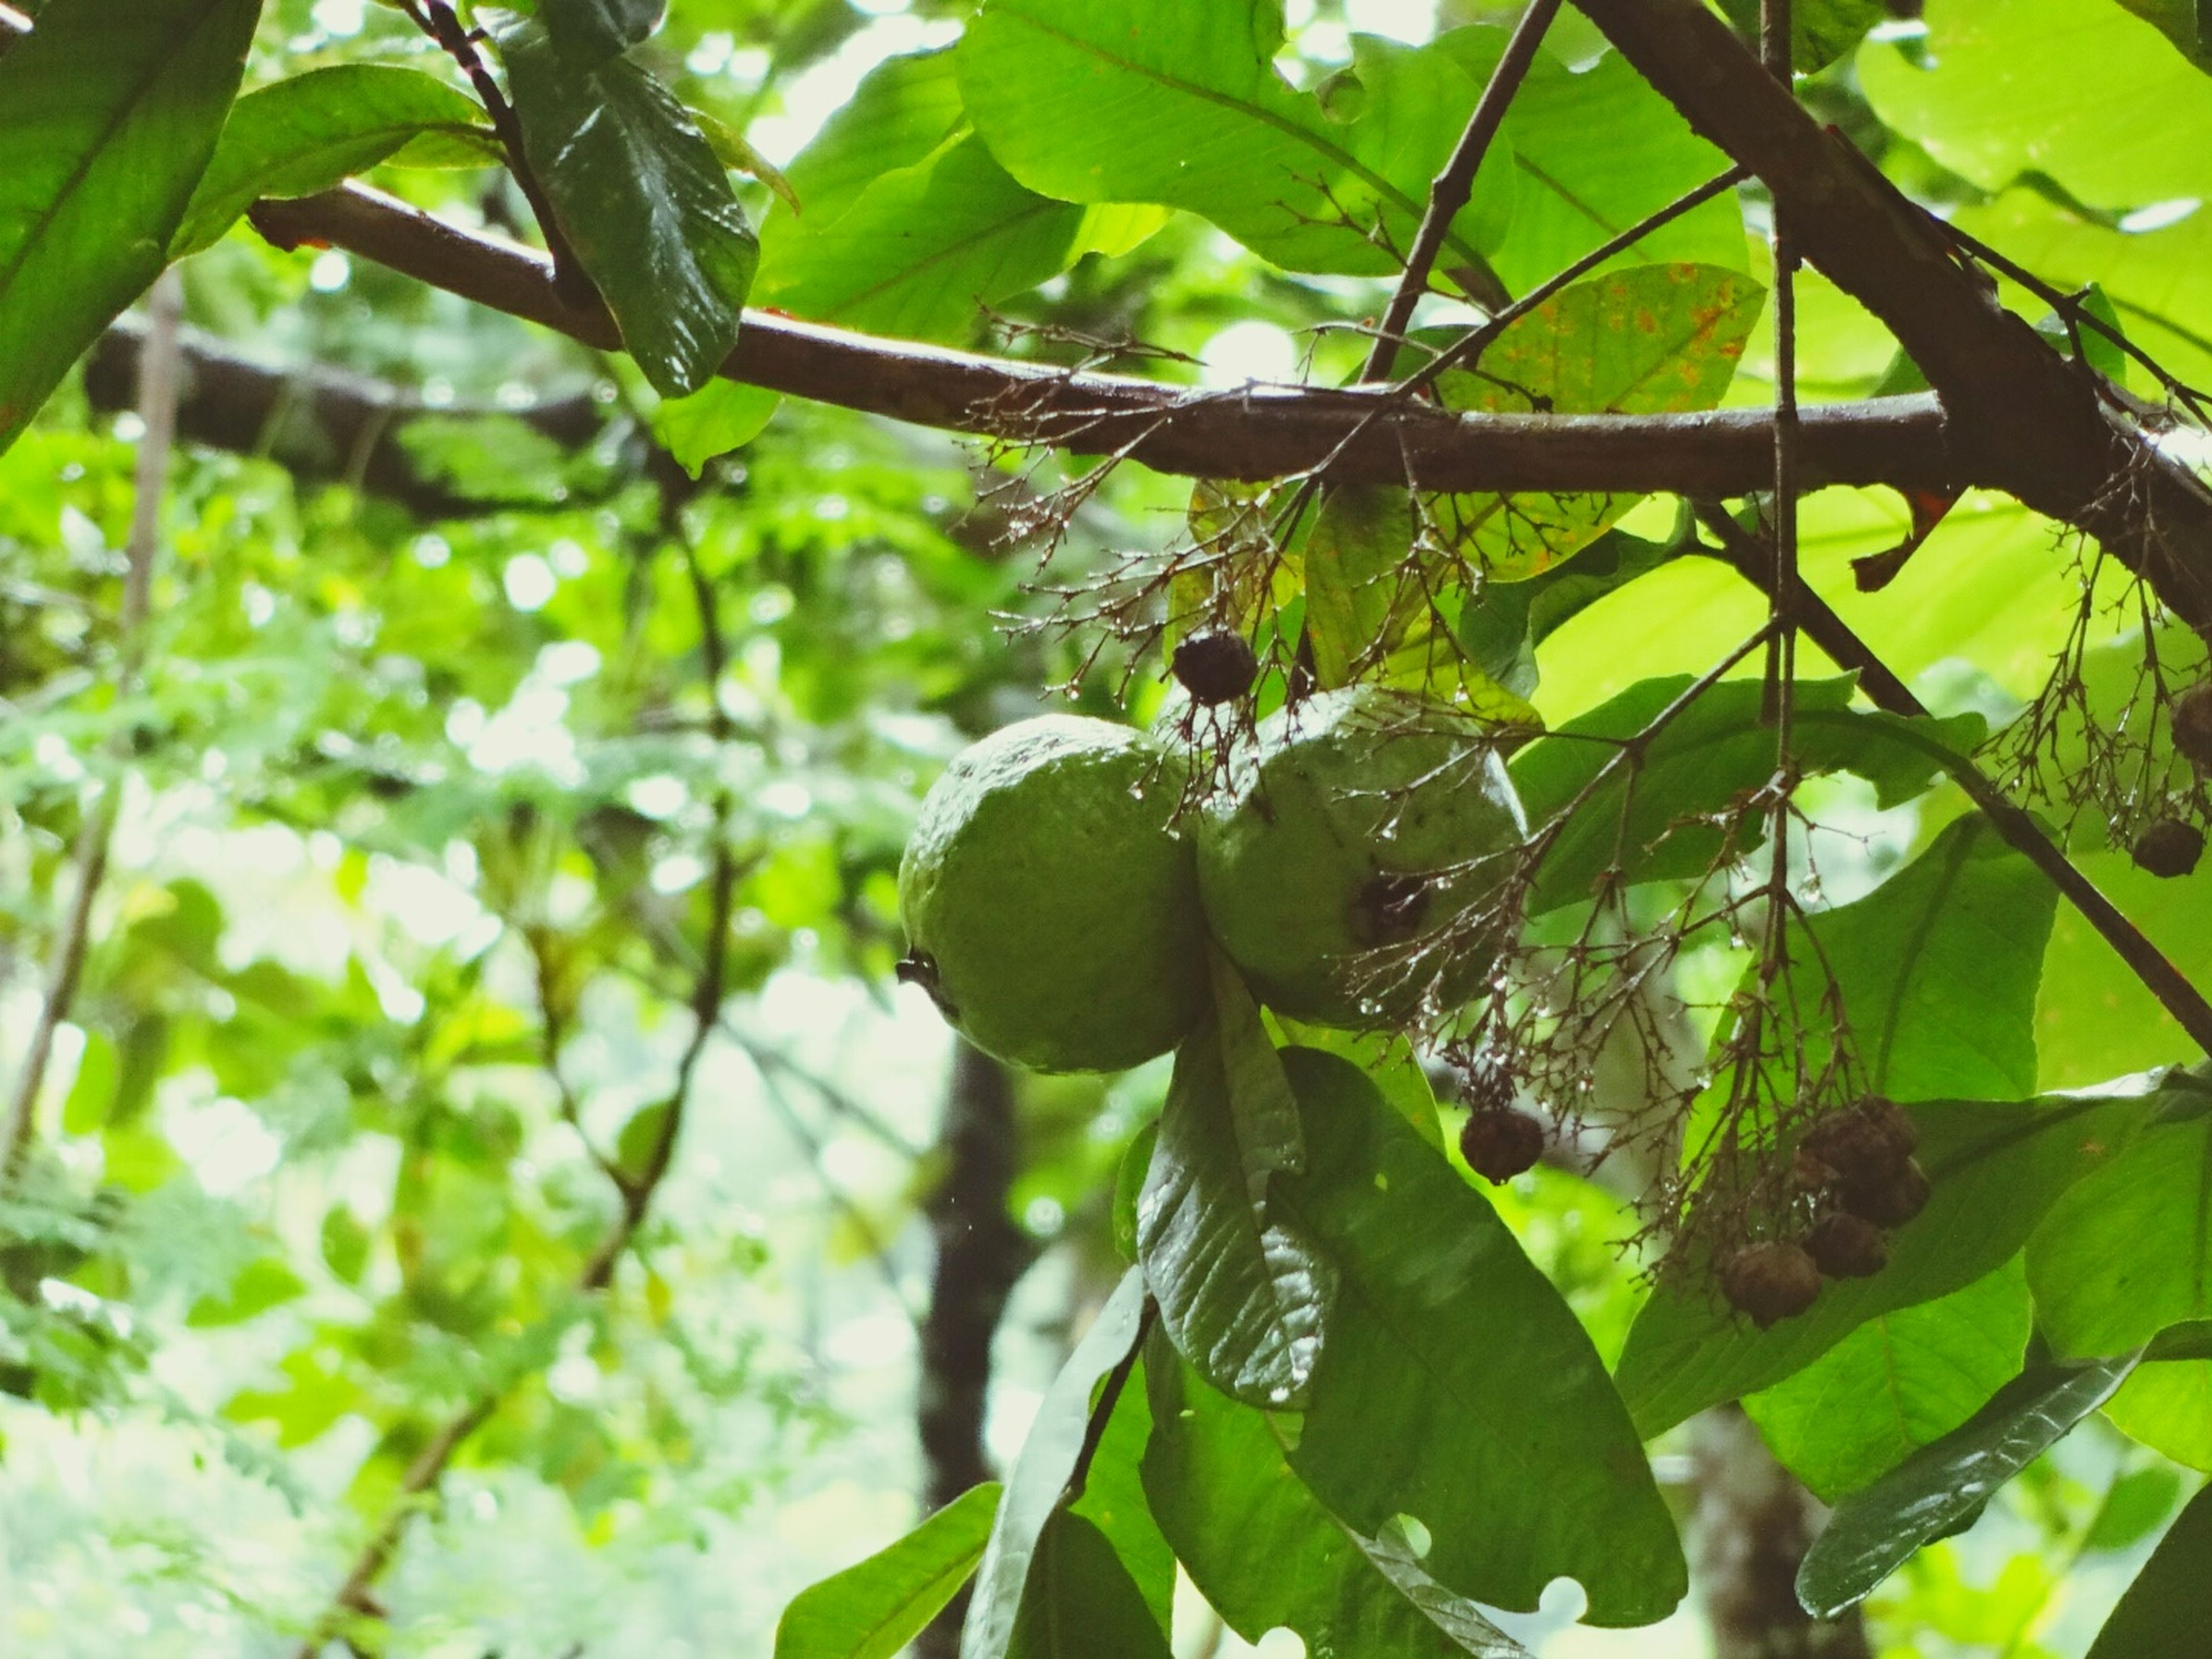 leaf, growth, tree, green color, focus on foreground, close-up, branch, freshness, nature, plant, beauty in nature, fruit, low angle view, growing, sunlight, day, outdoors, no people, tranquility, food and drink